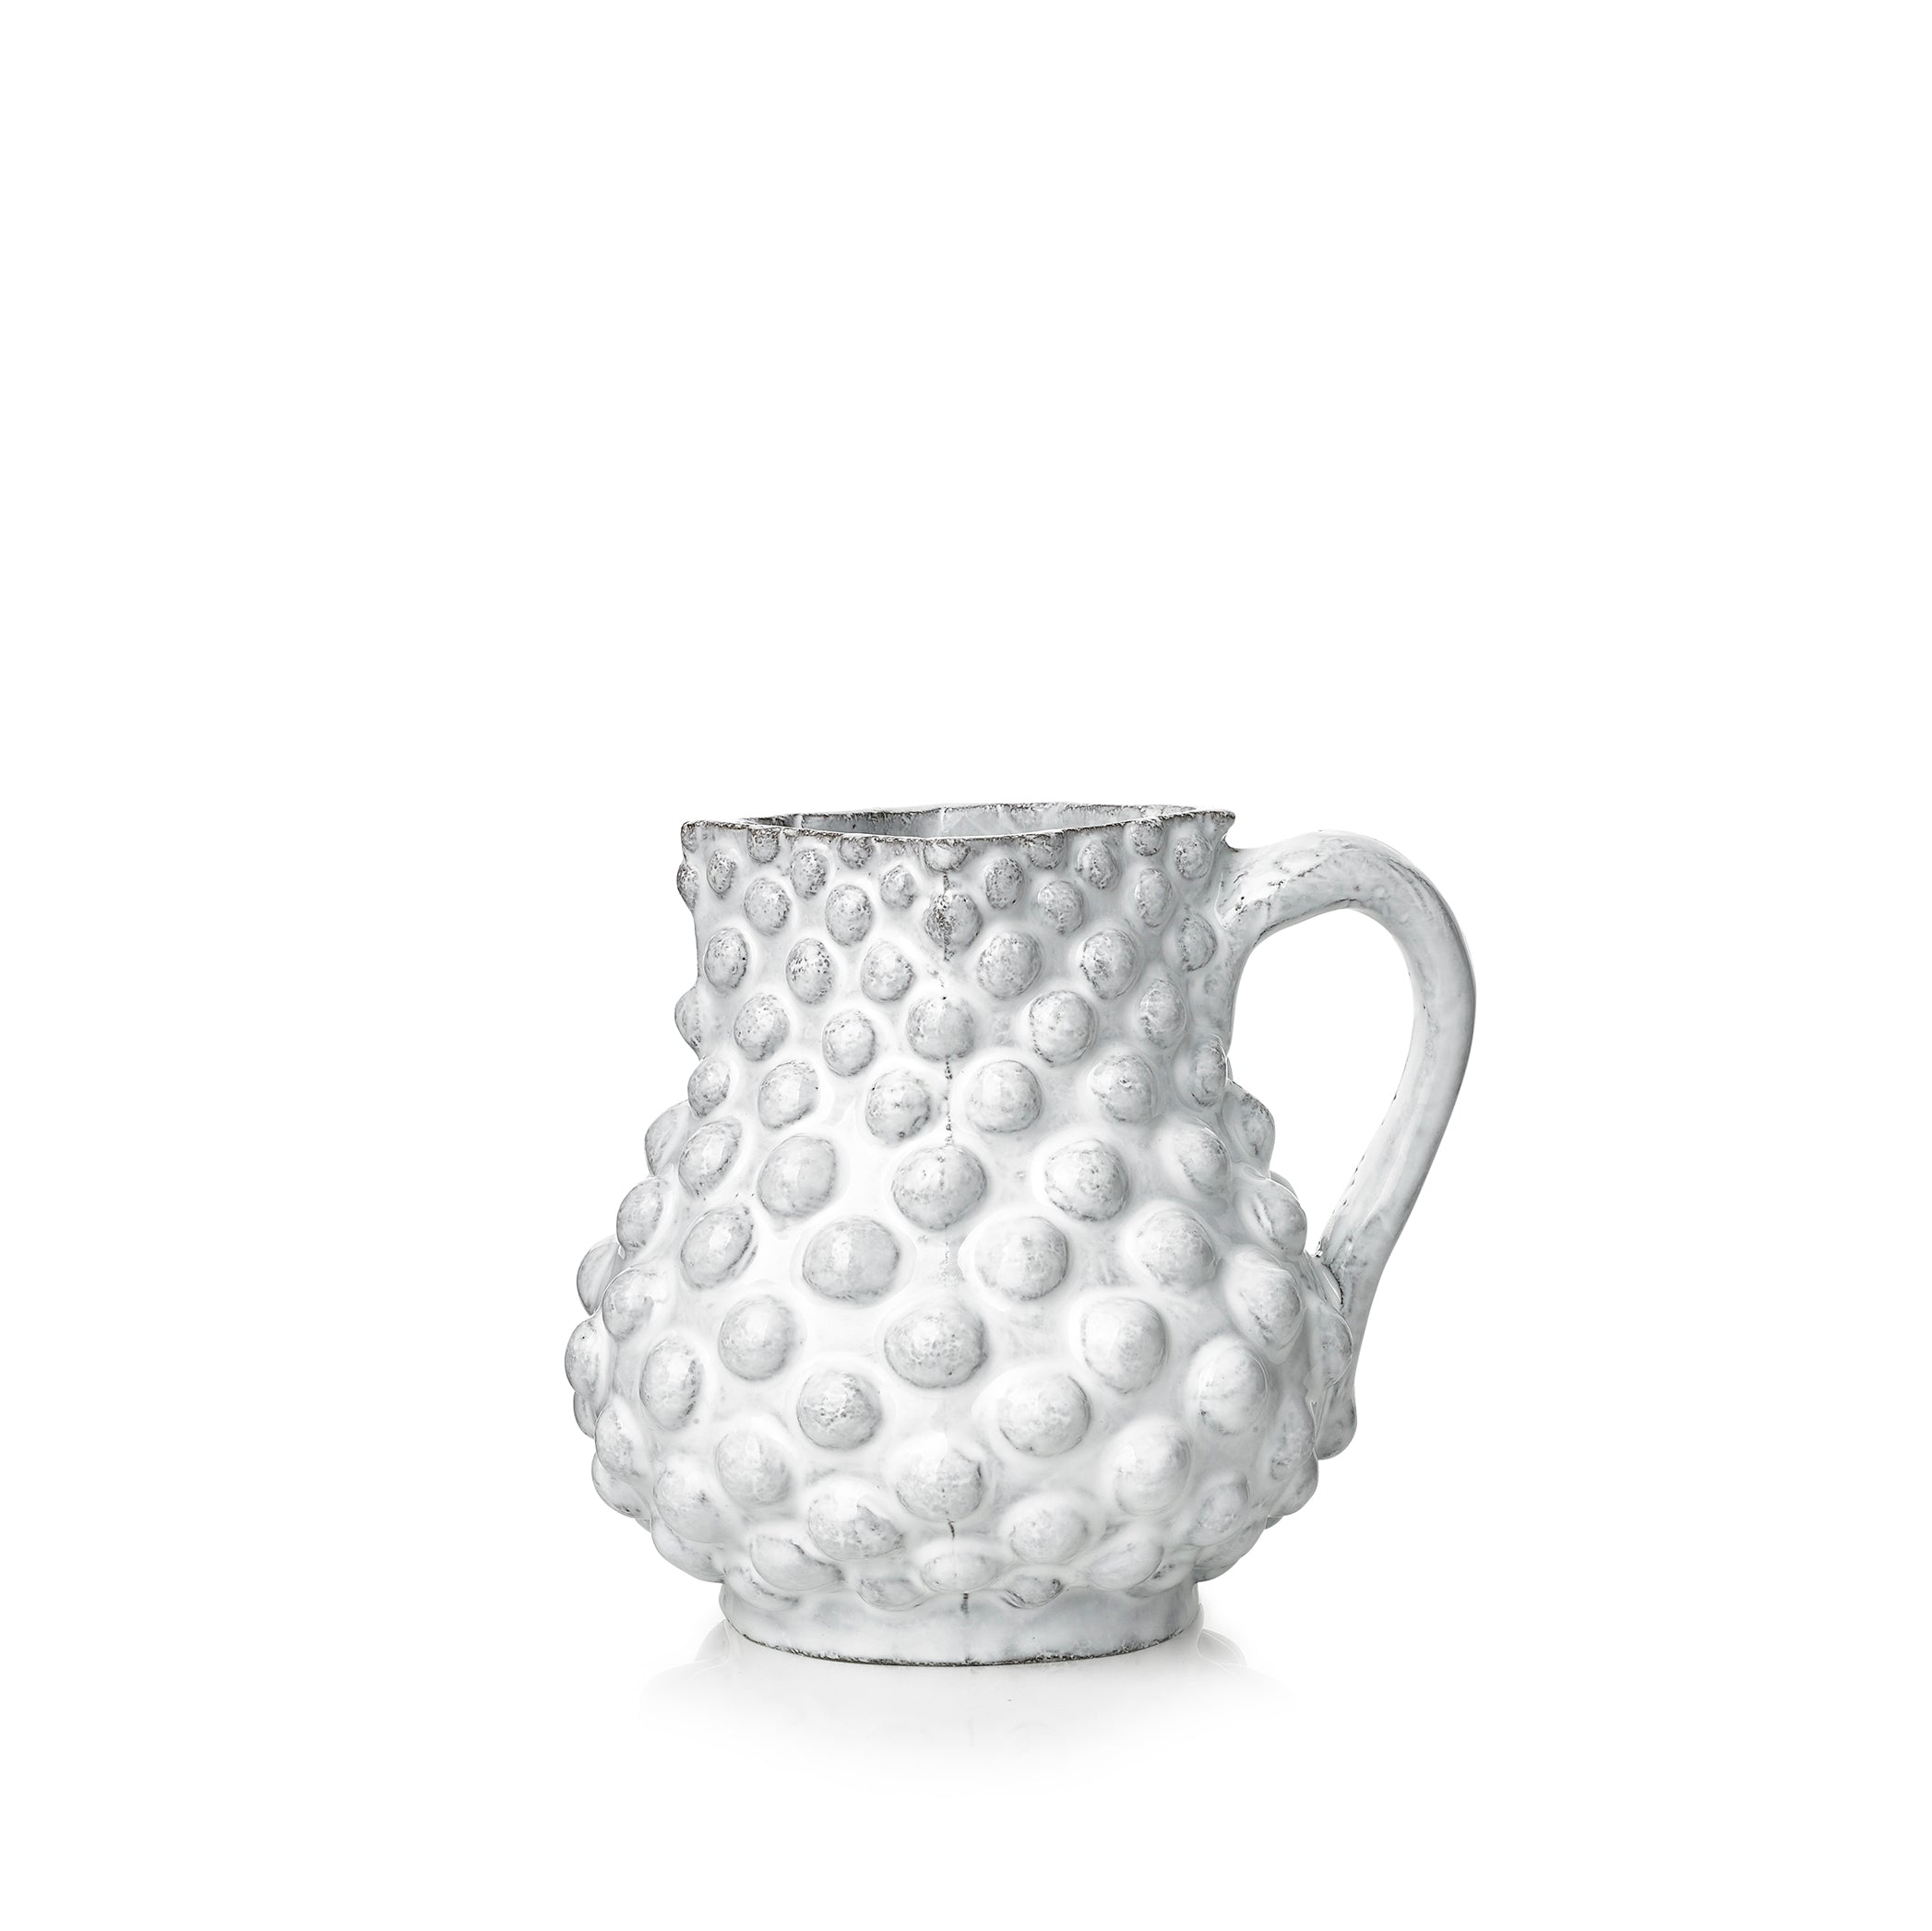 Adelaide Pitcher, Medium by Astier de Villatte